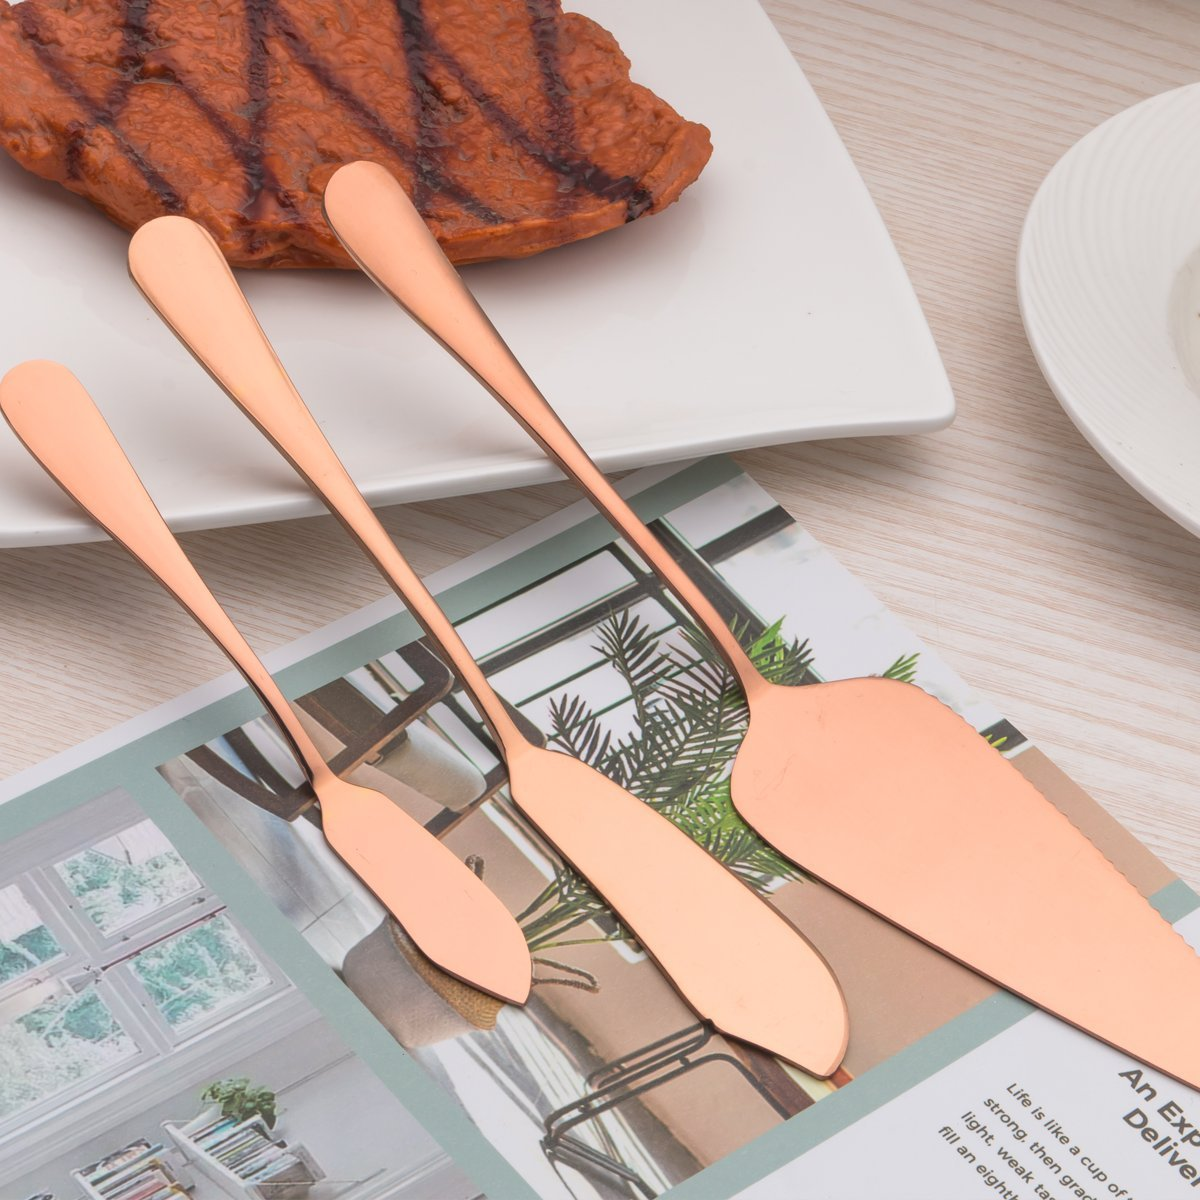 Copper Color Silverware Set Berglander Cutlery Set 24 Piece Stainless Steel with Titanium Rose Gold Plated Parties Cutlery Set Service for 6 Luxury for Wedding